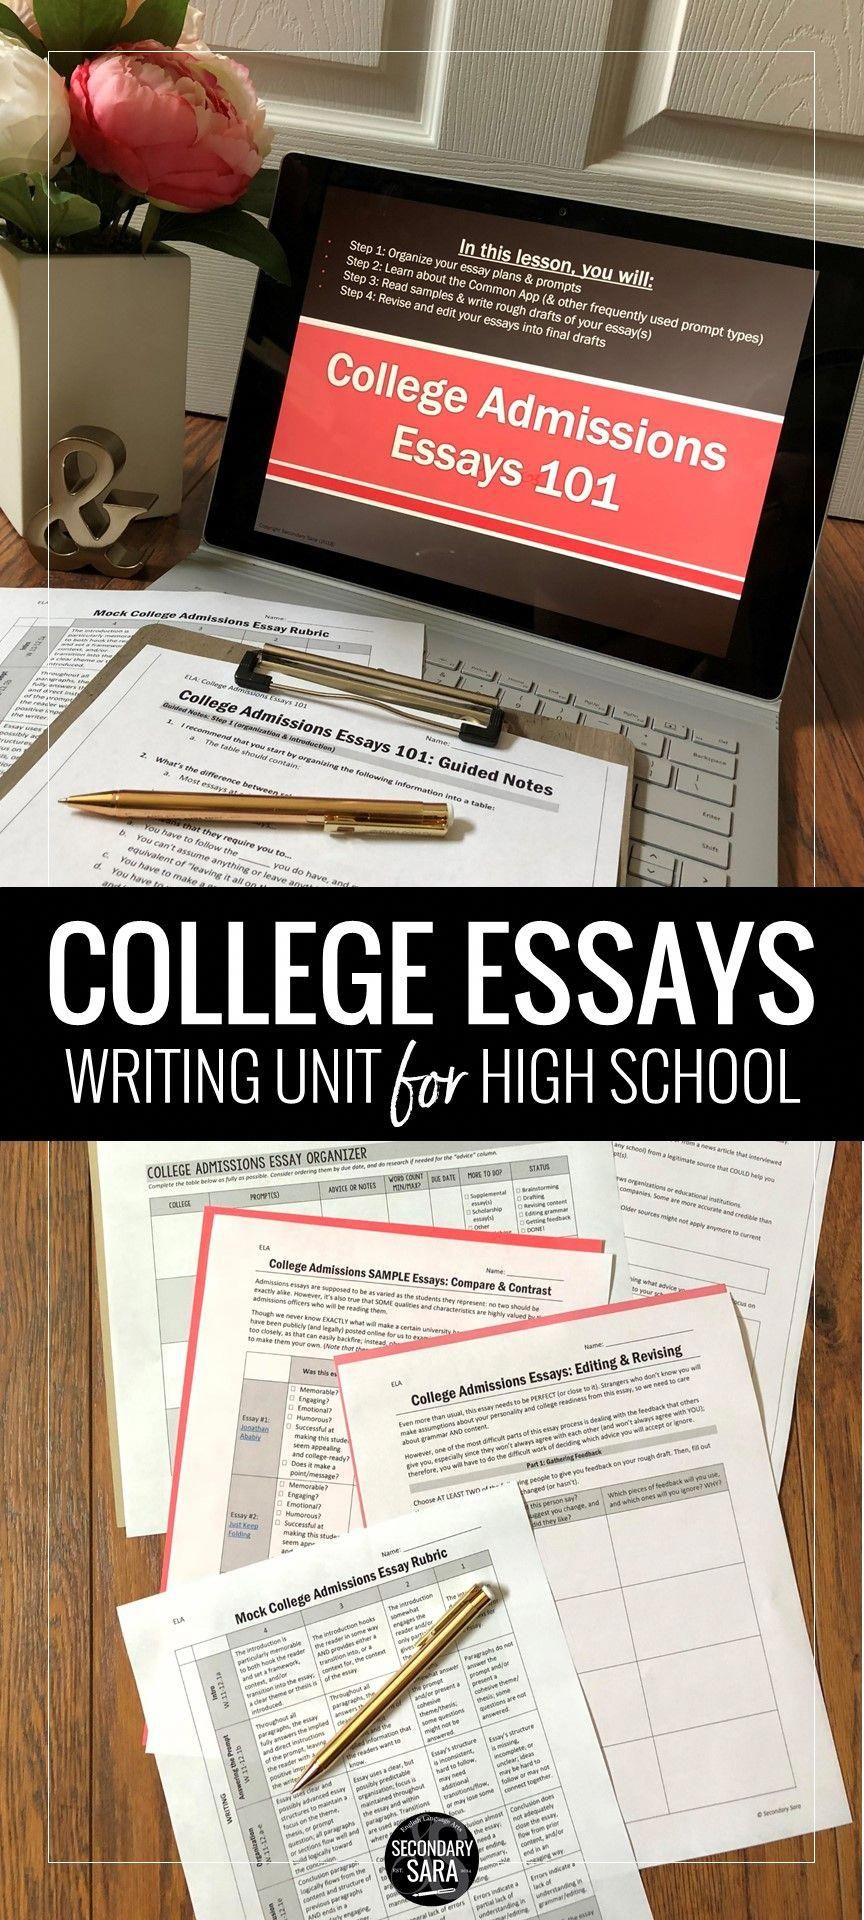 College Admissions Essay/Personal Statement Writing Unit